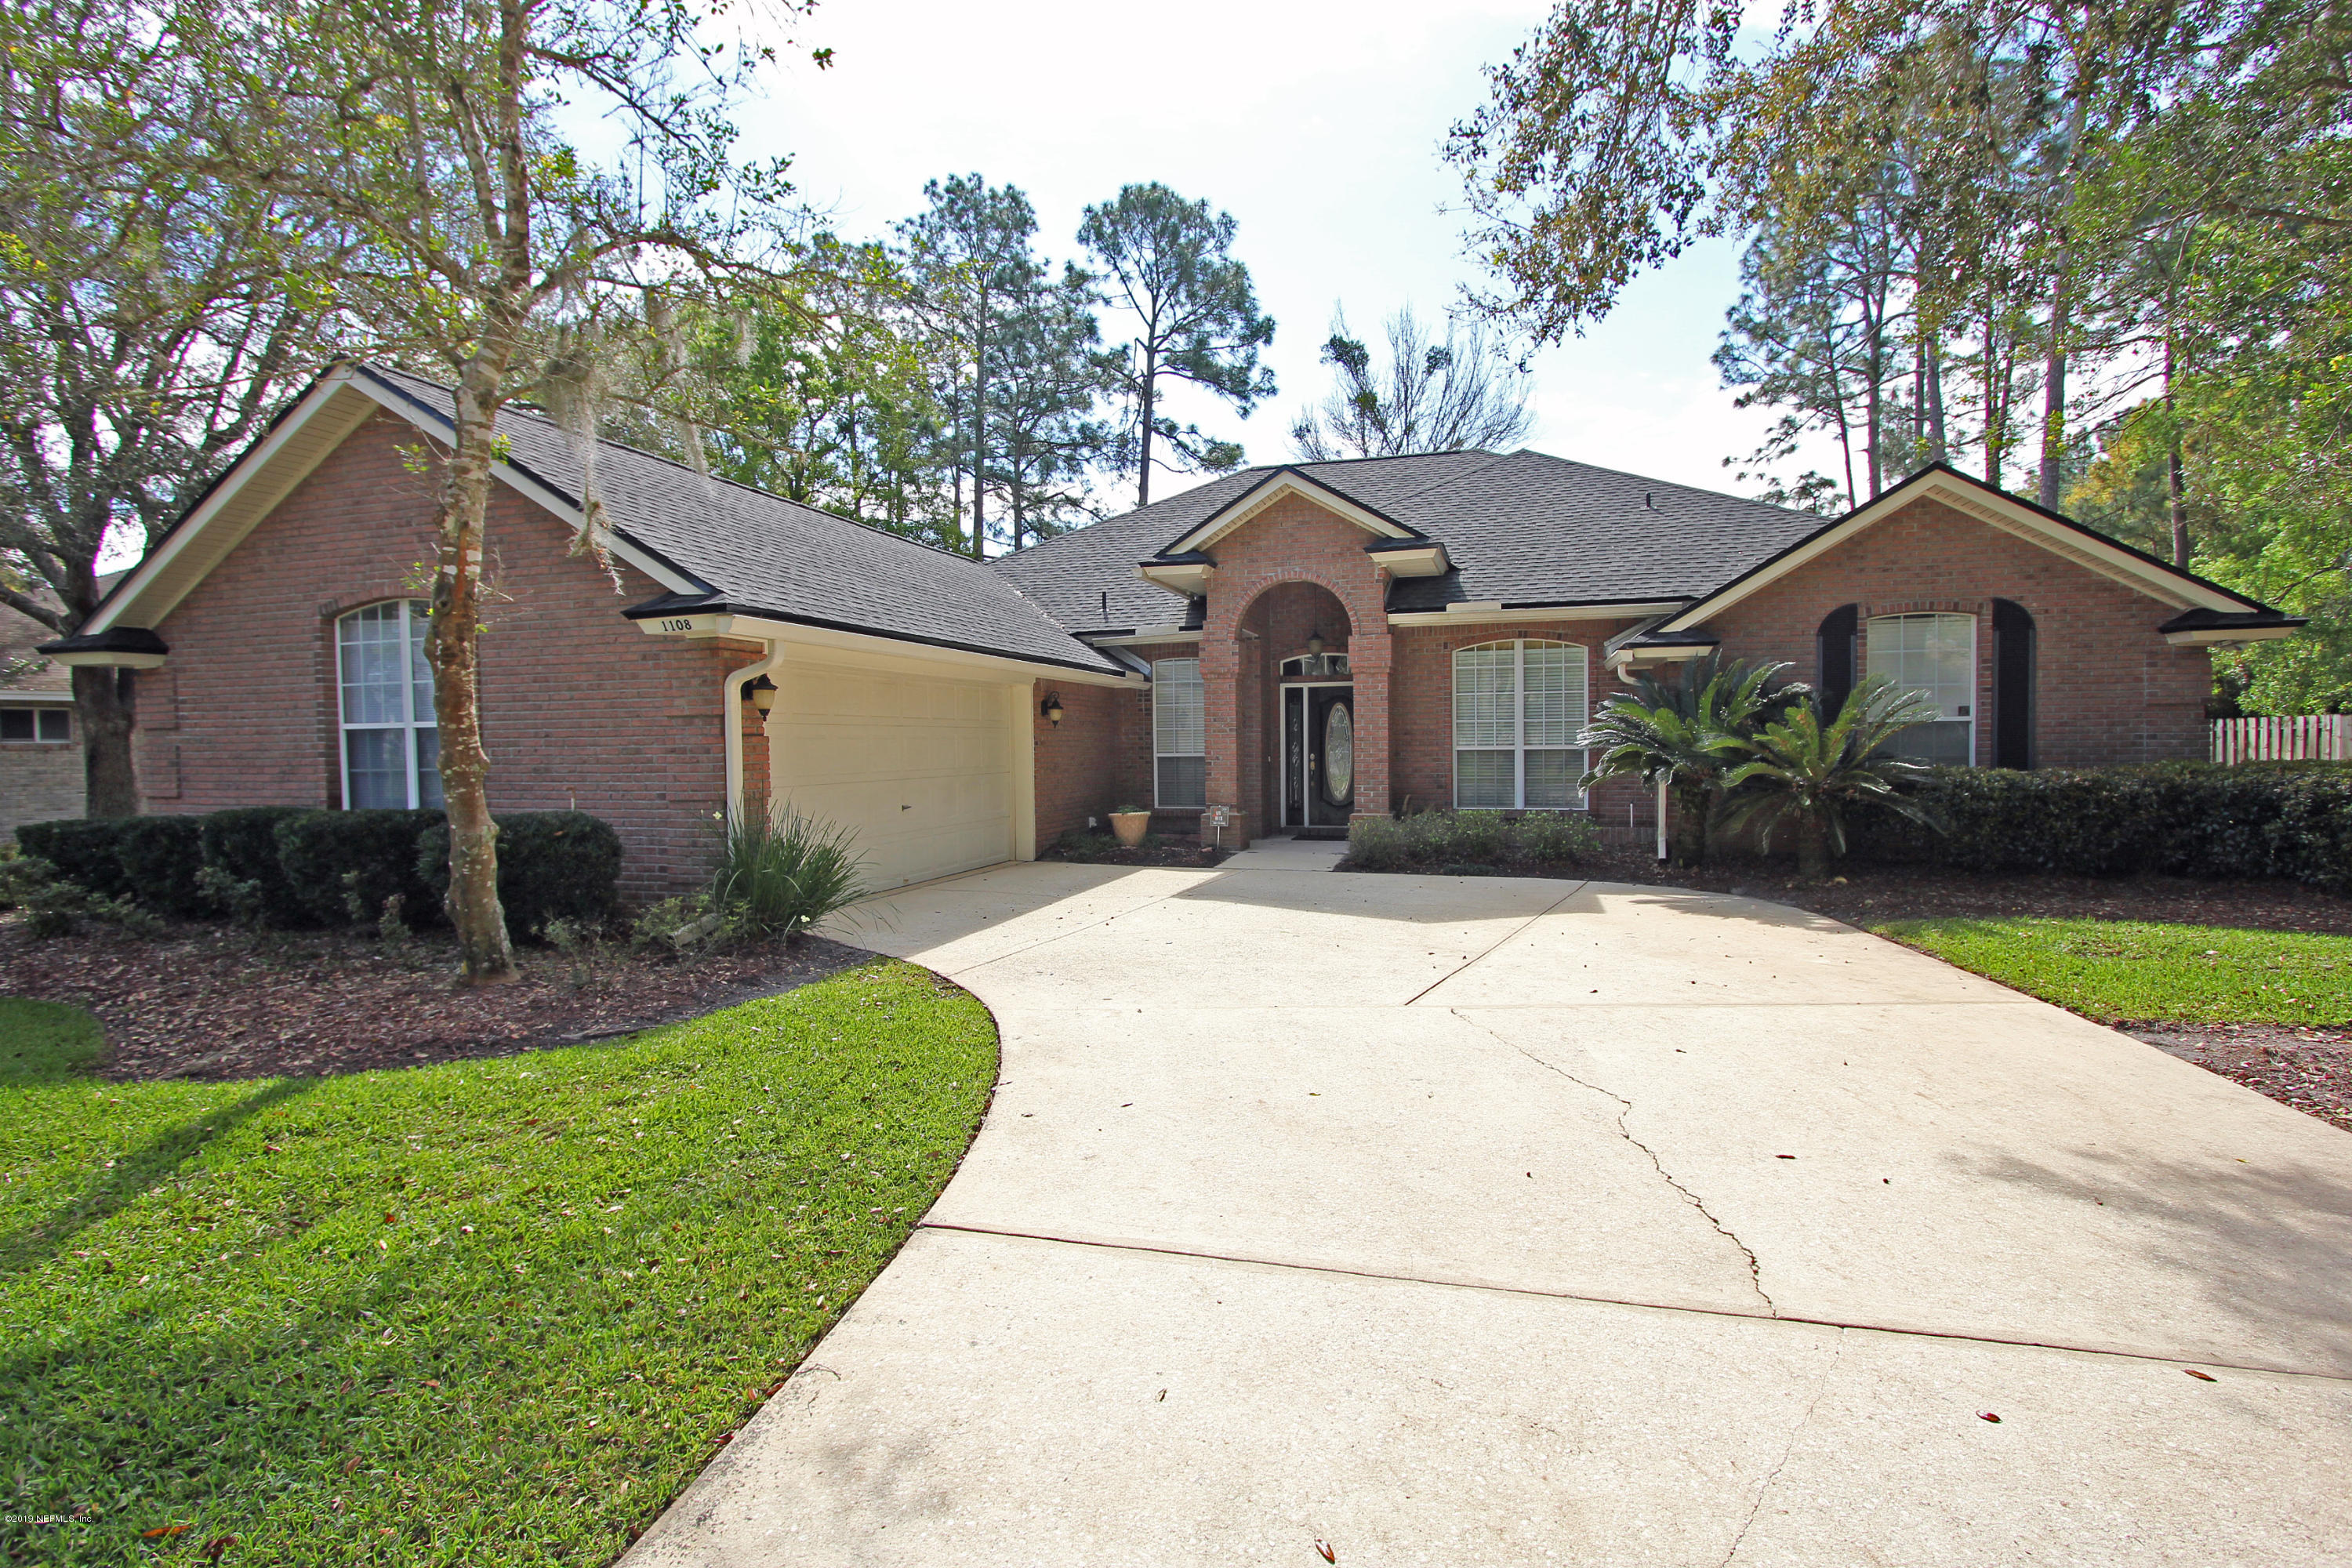 1108  LAKE PARKE DR, Julington Creek in ST. JOHNS County, FL 32259 Home for Sale